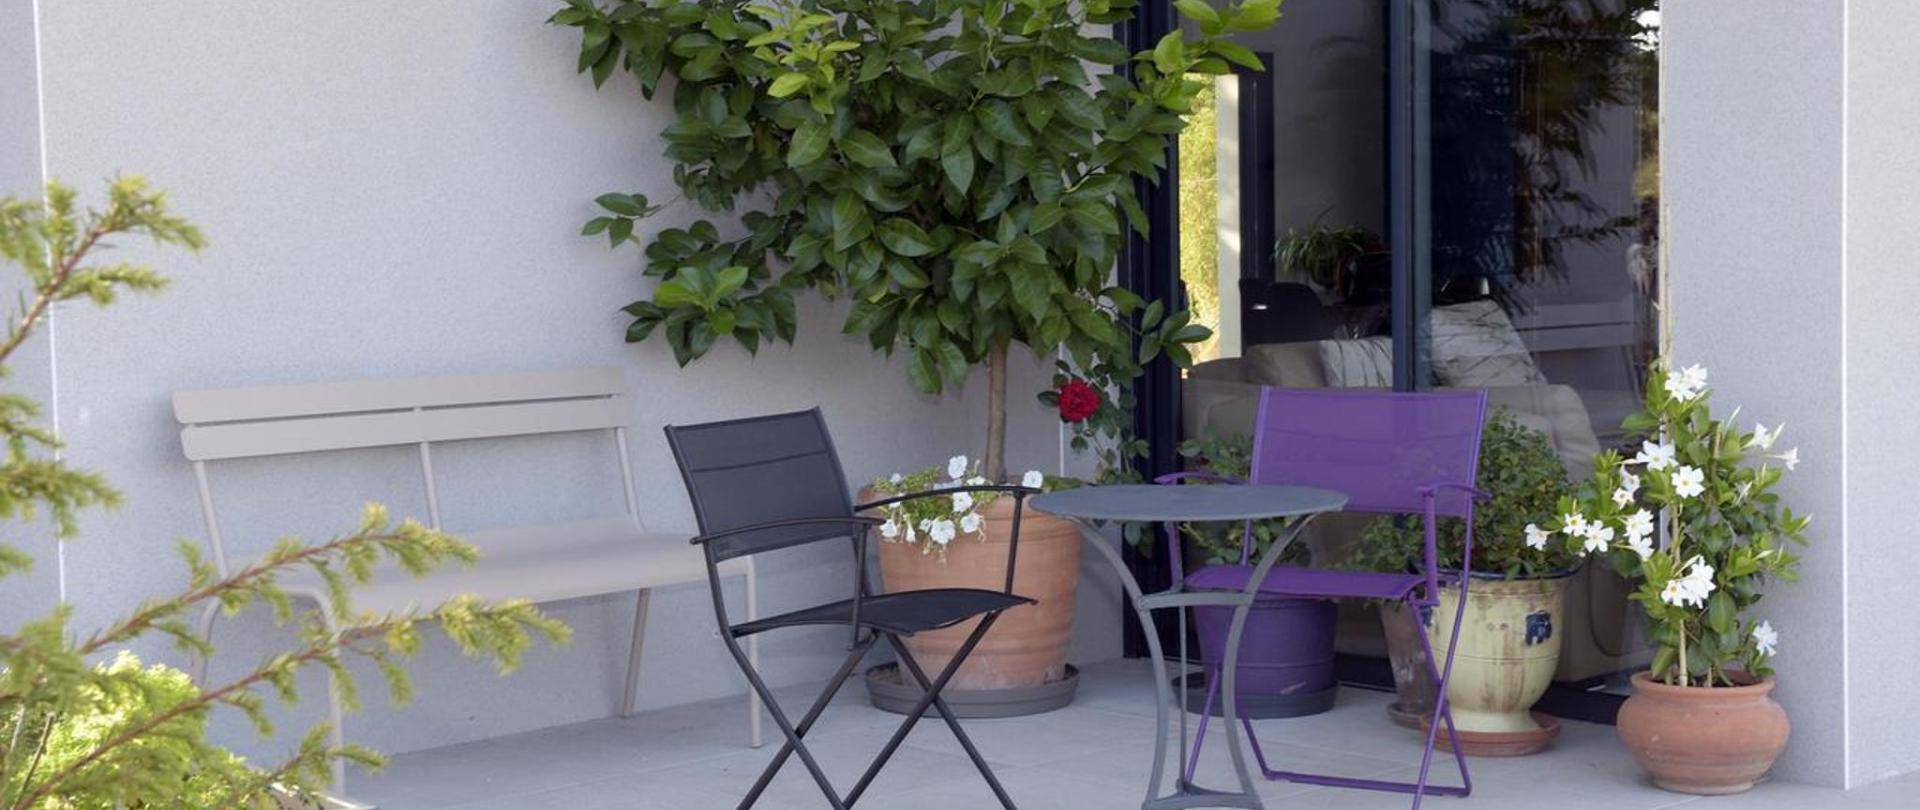 Maison Canopee Official Site Bed And Breakfasts In Saint Genis Les